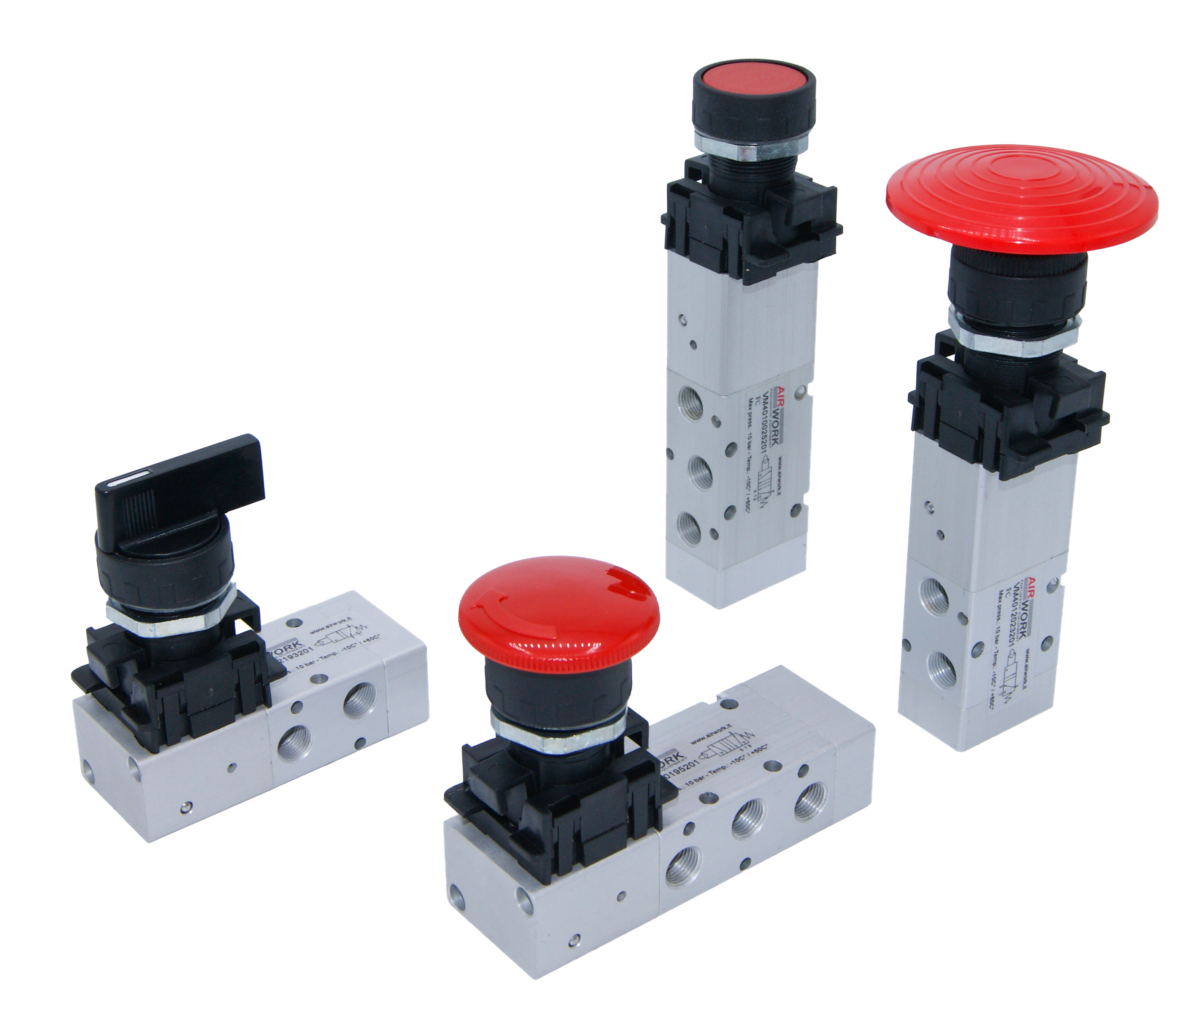 manual valves with integrated actuator